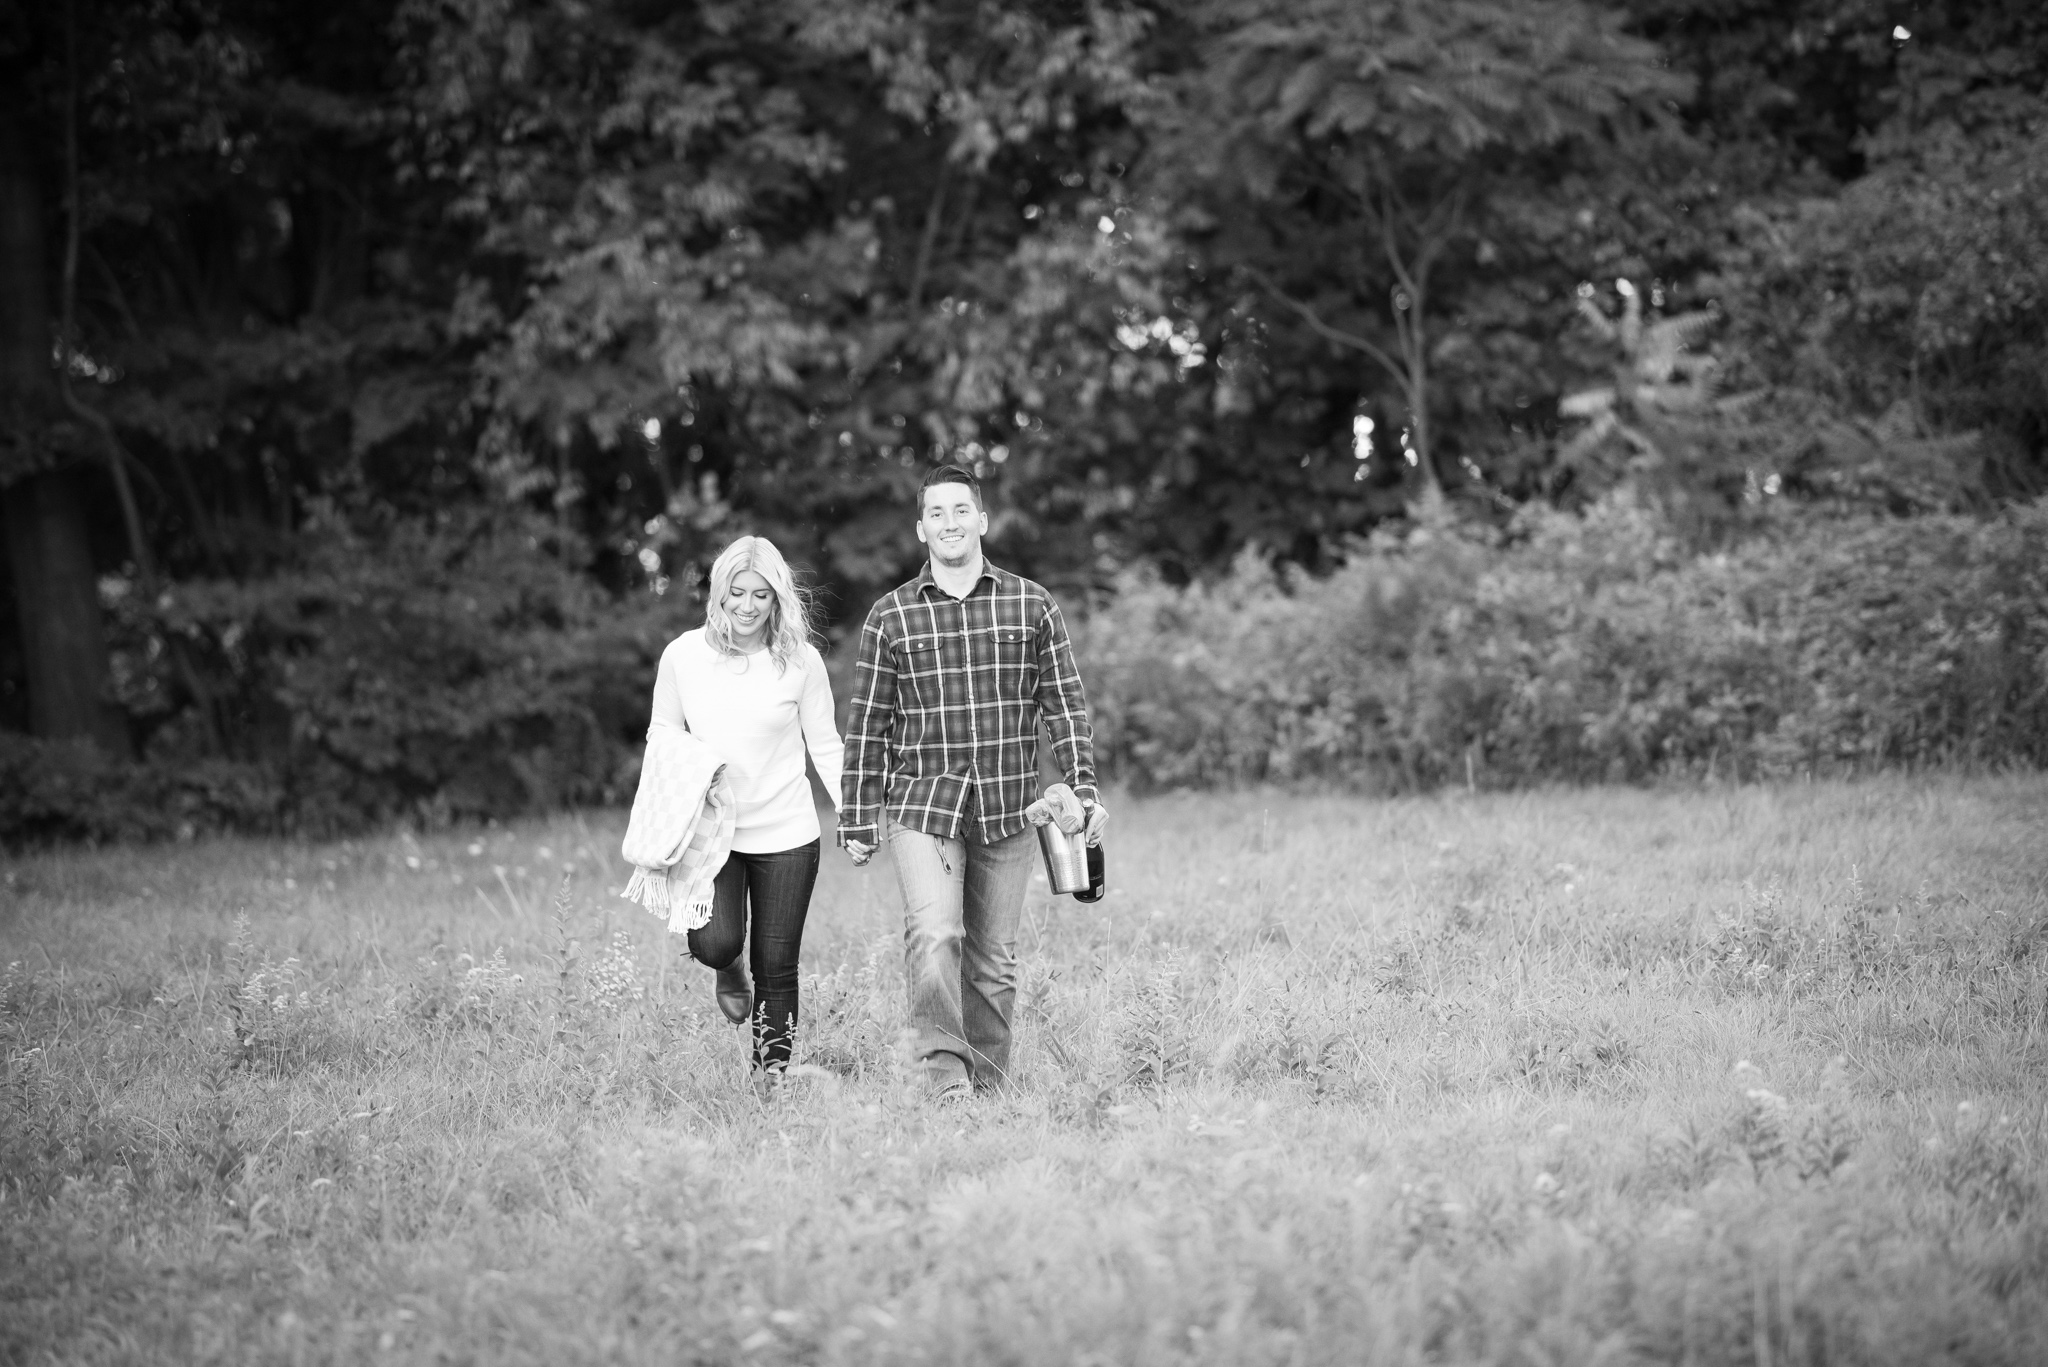 Mindy-Engagement-photography-wedding-photographer-northeast-PA-Scranton-Poconos-23.jpg